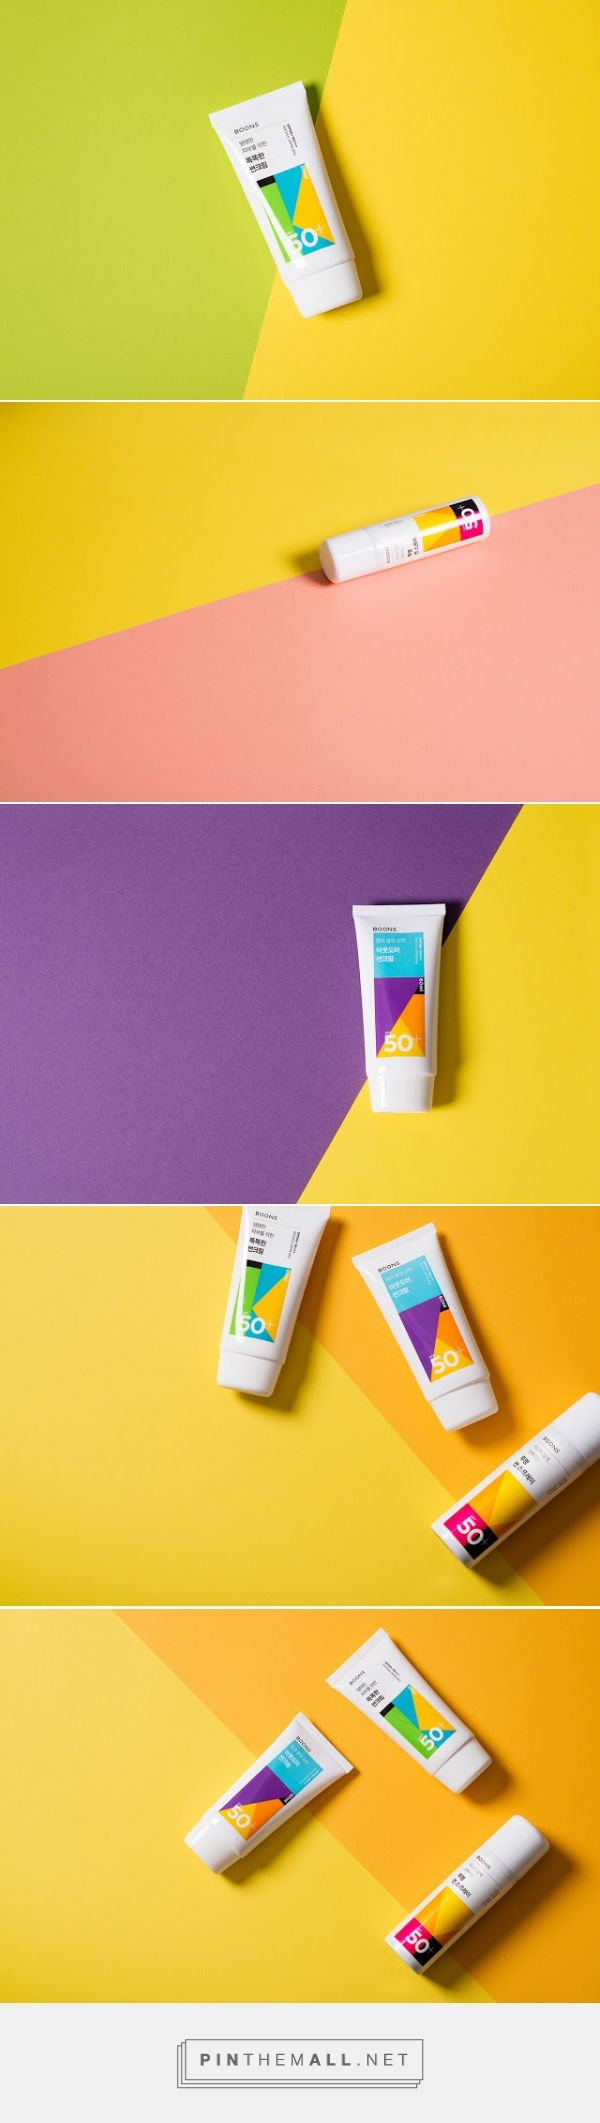 Boons Sun Care Series #packaging by Chuigraf & ContentFormContext - http://www.packagingoftheworld.com/2014/12/boons-sun-care-series.html